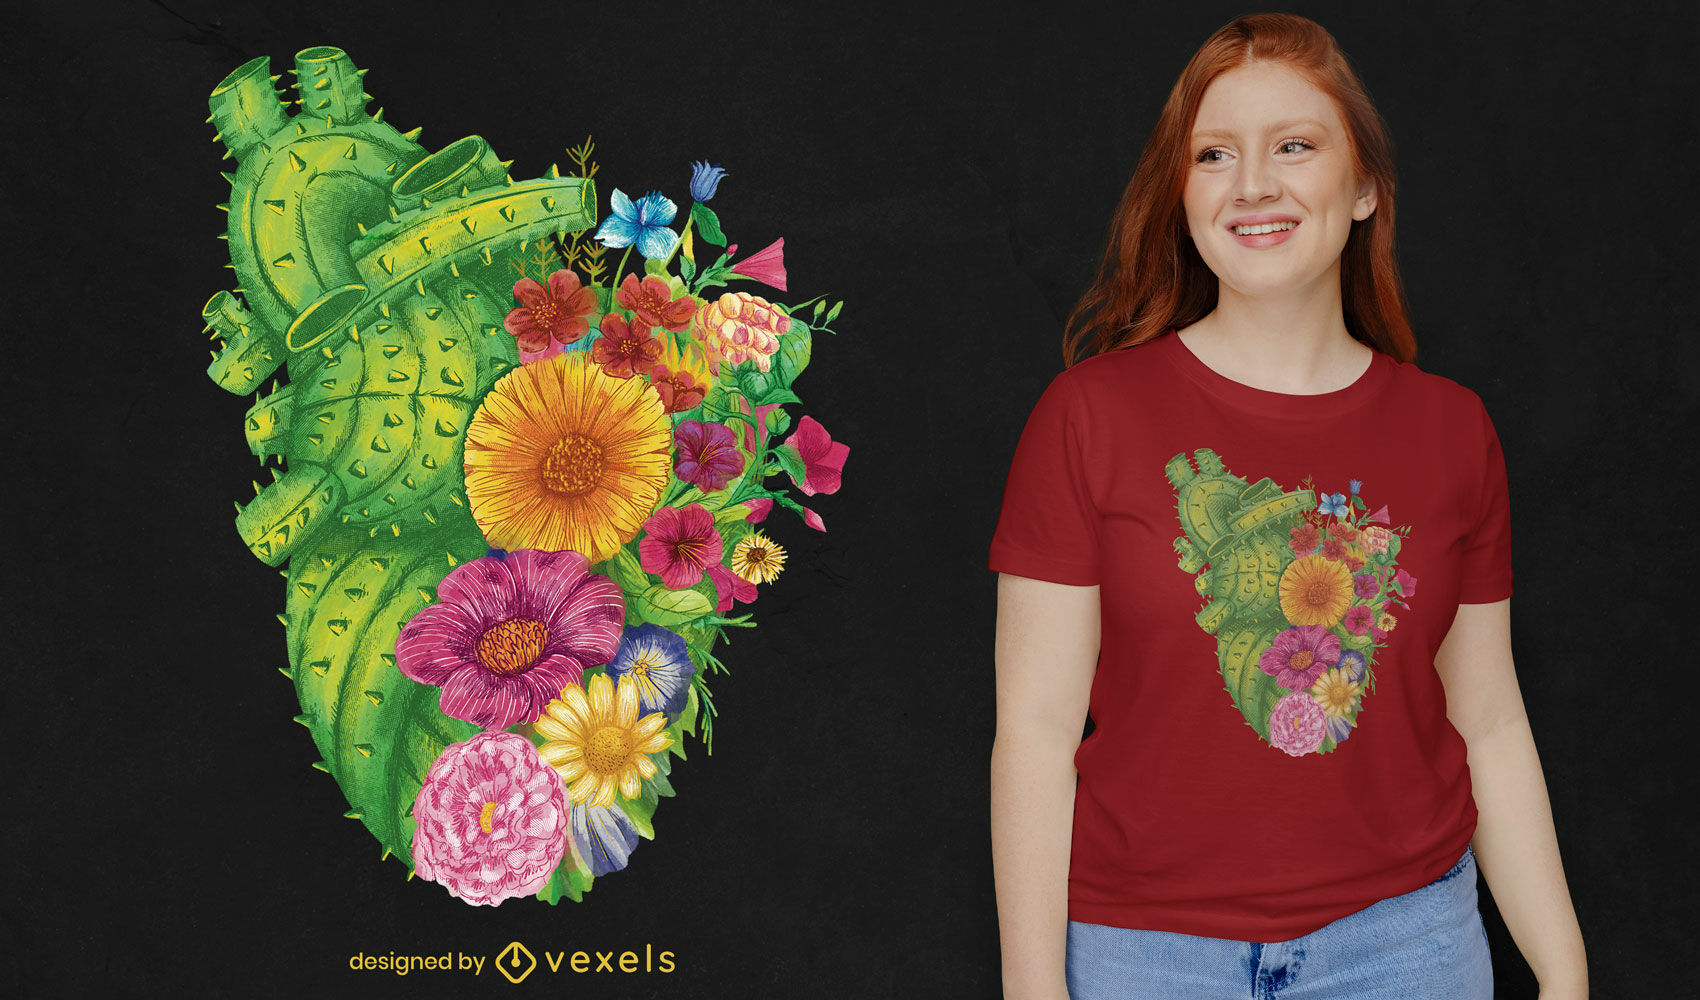 Heart shaped cactus and flowers t-shirt psd